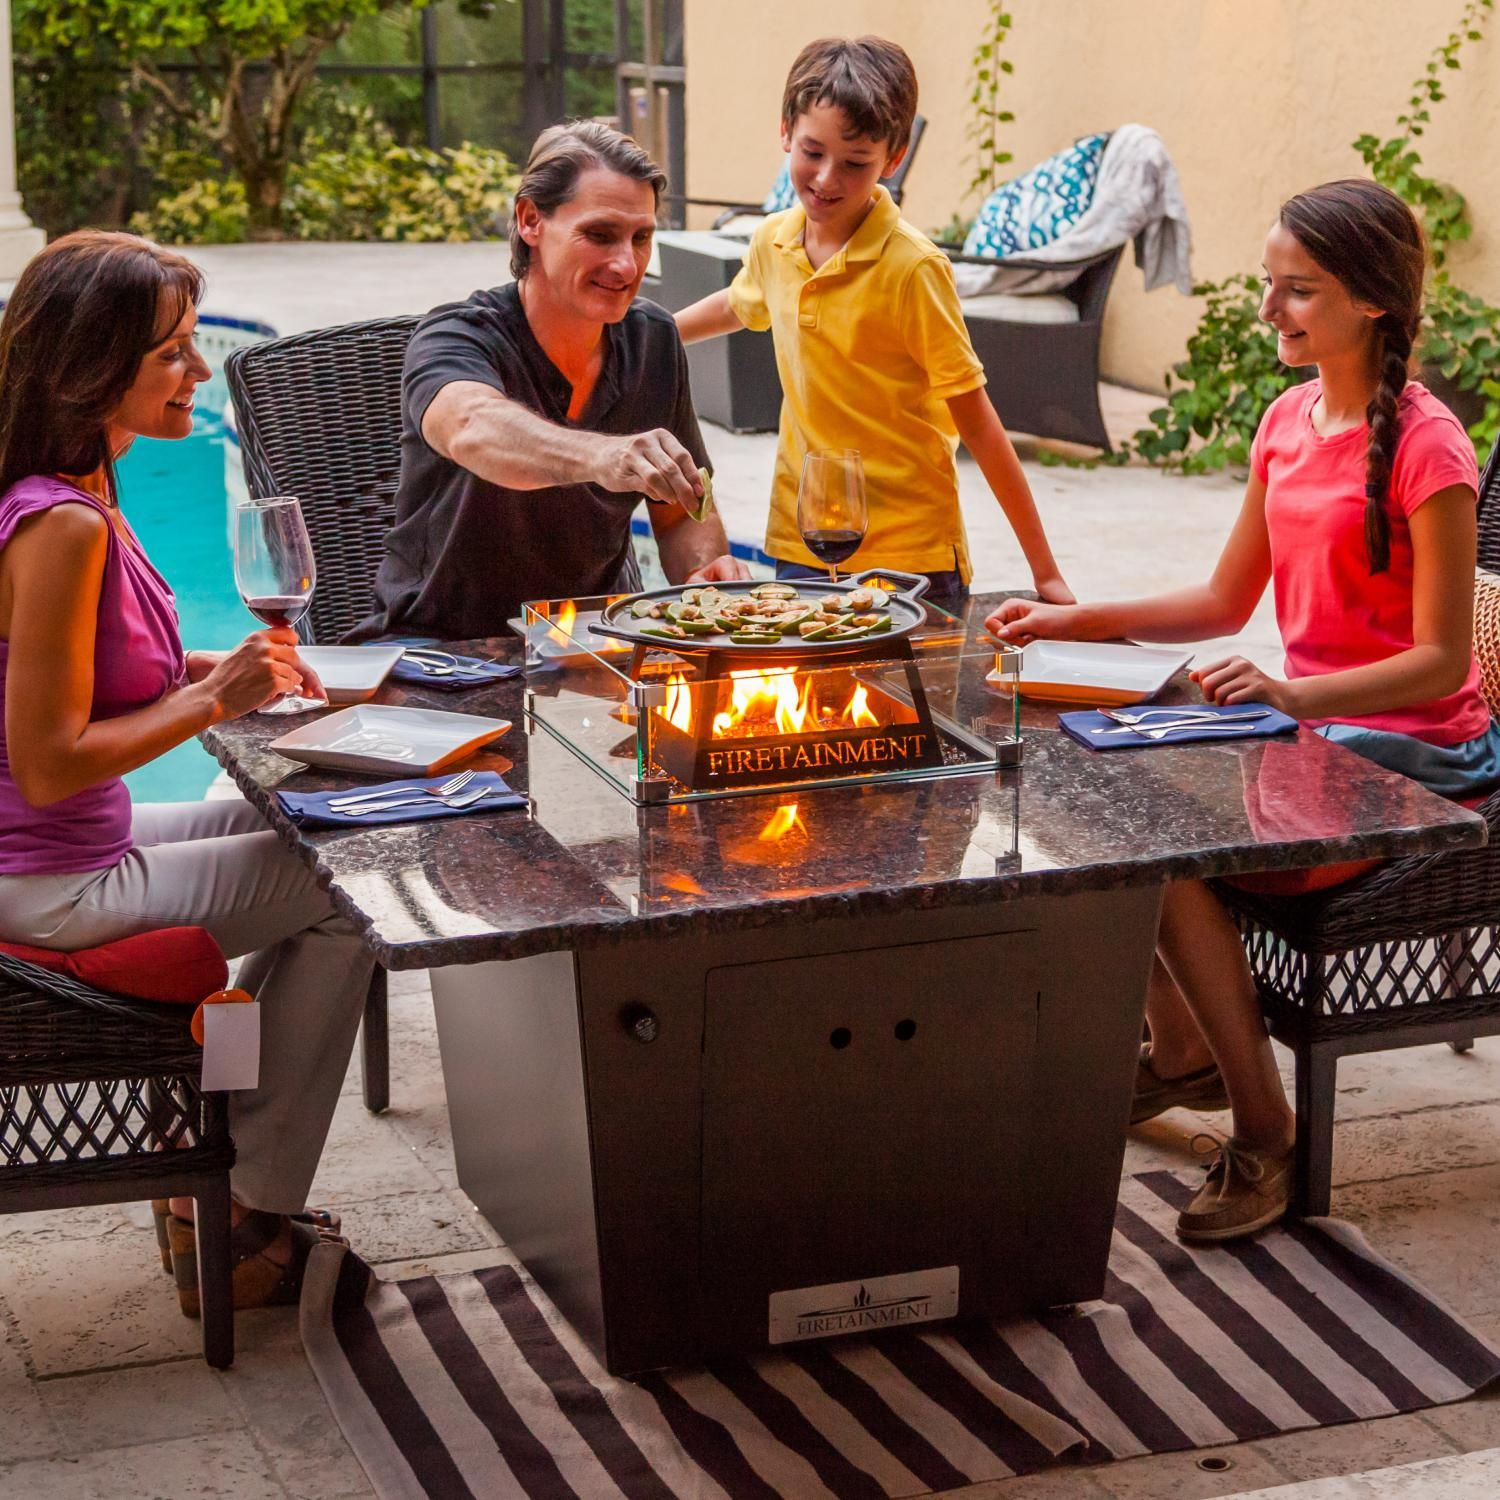 4a43b71914a0b6304c9a316cf1d80b7e Top Result 50 Awesome Patio Dining Table with Fire Pit